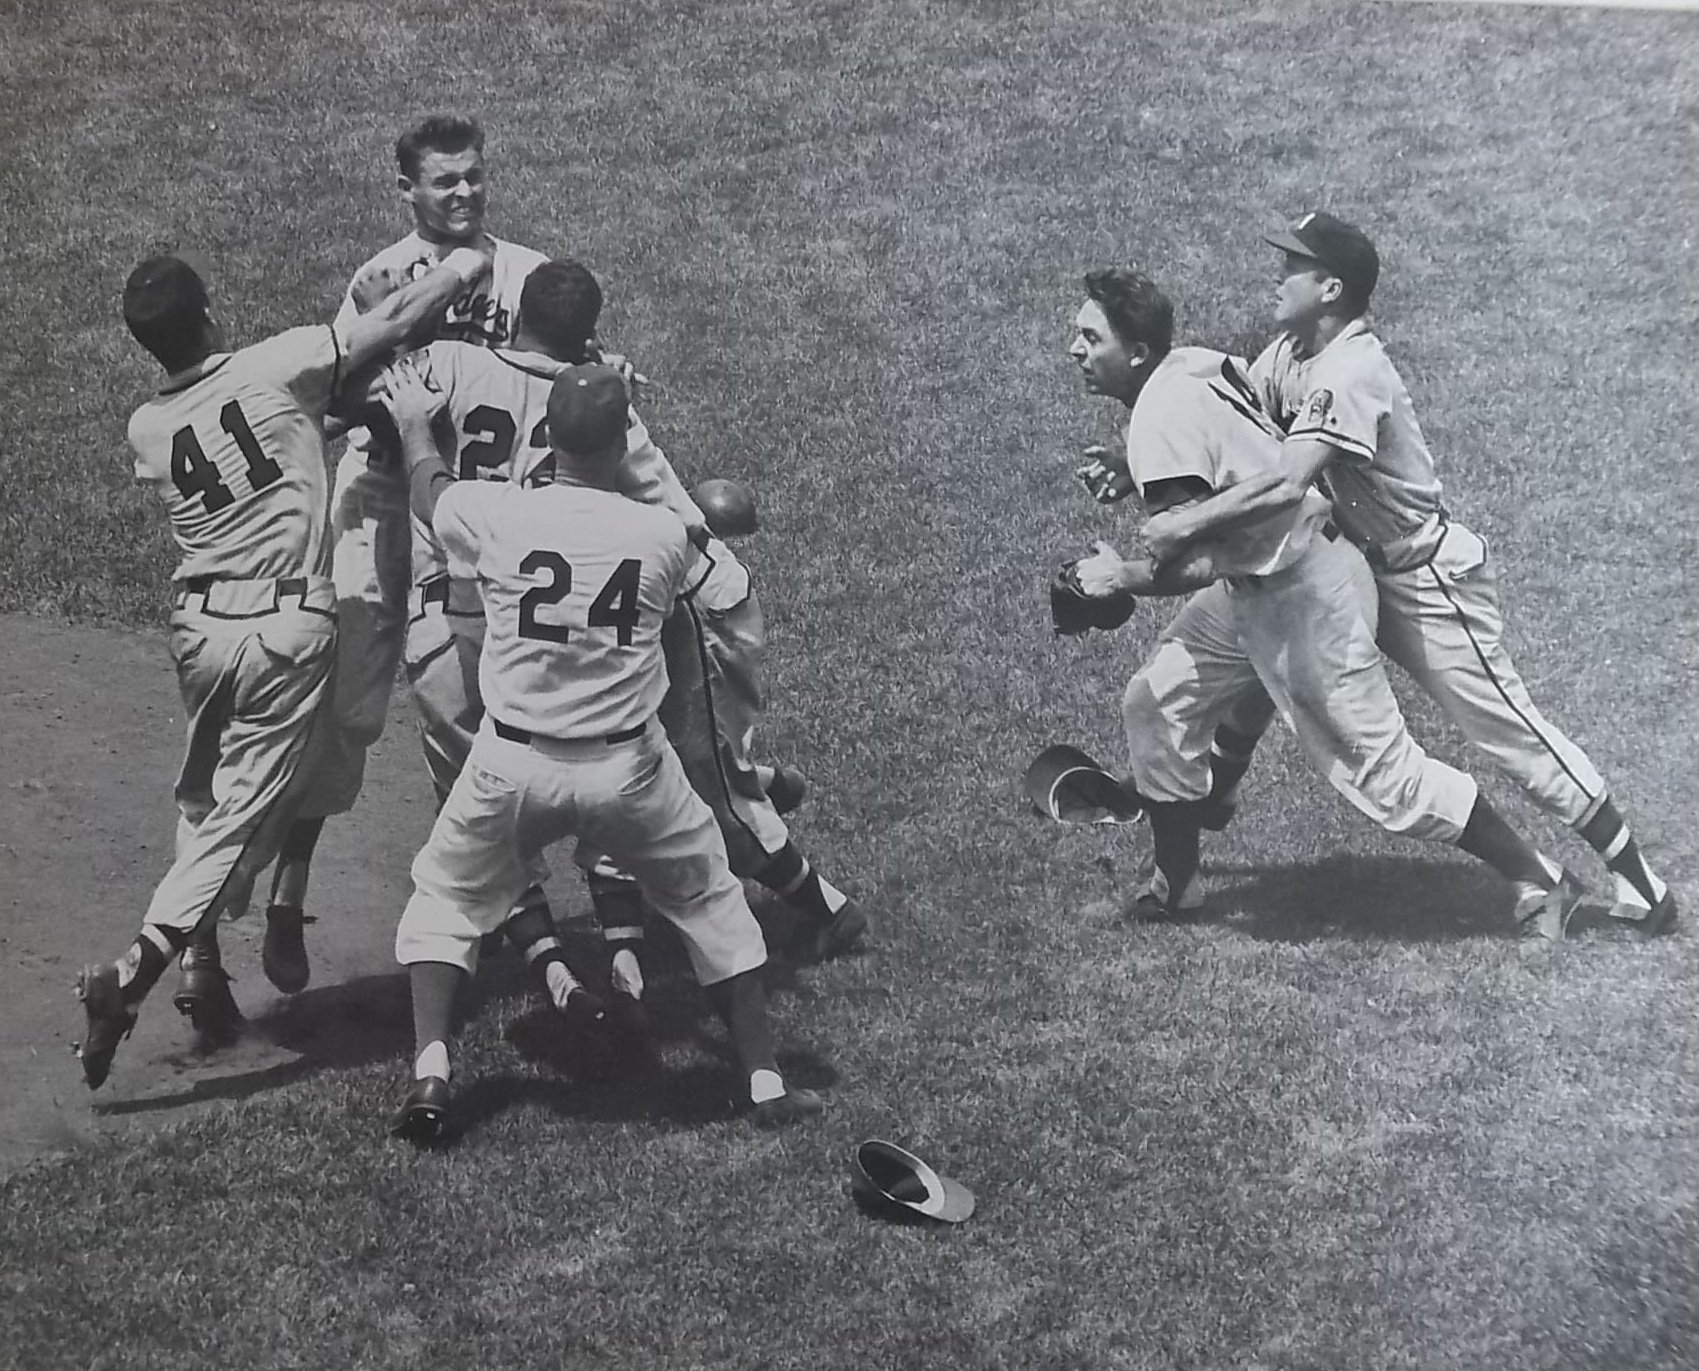 Remembering Some Of the Most Iconic Brawls In Baseball History